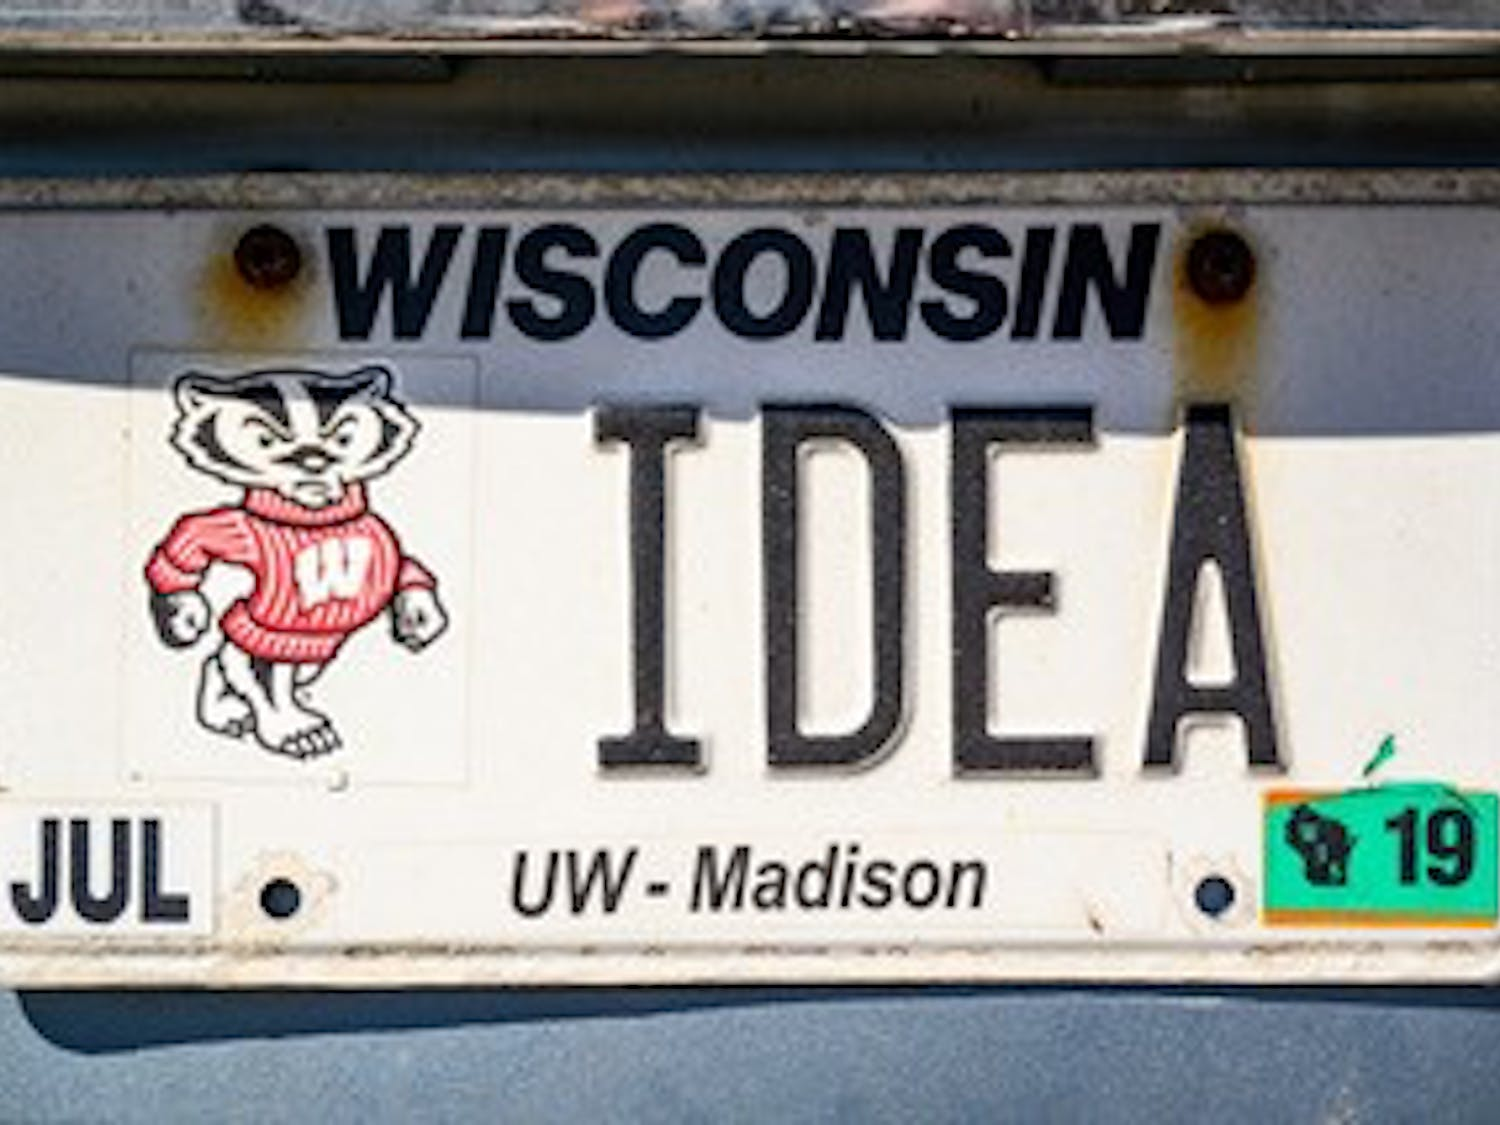 A personalized license plate displaying a nod to the Wisconsin Idea, a philosophy embraced by the University of Wisconsin System, is  spotted on a vehicle in Lot 34 on April 23, 2019. (Photo by Bryce Richter /UW-Madison)